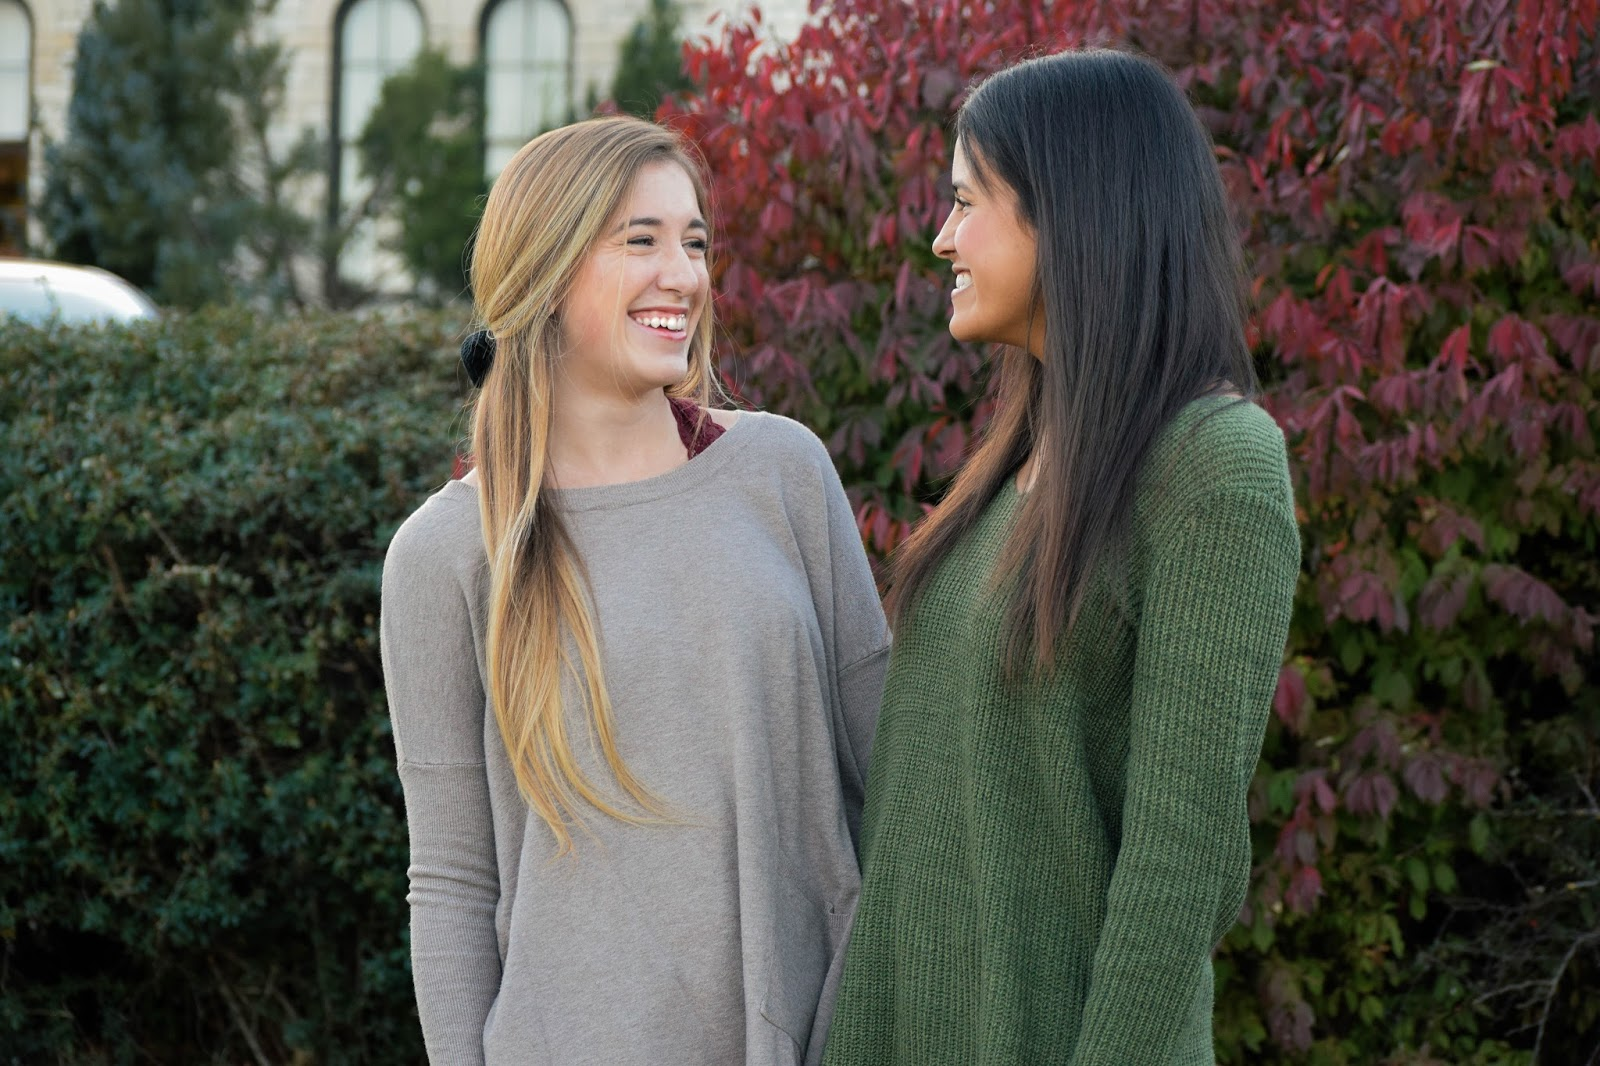 Two women smiling at each other, one younger than the other